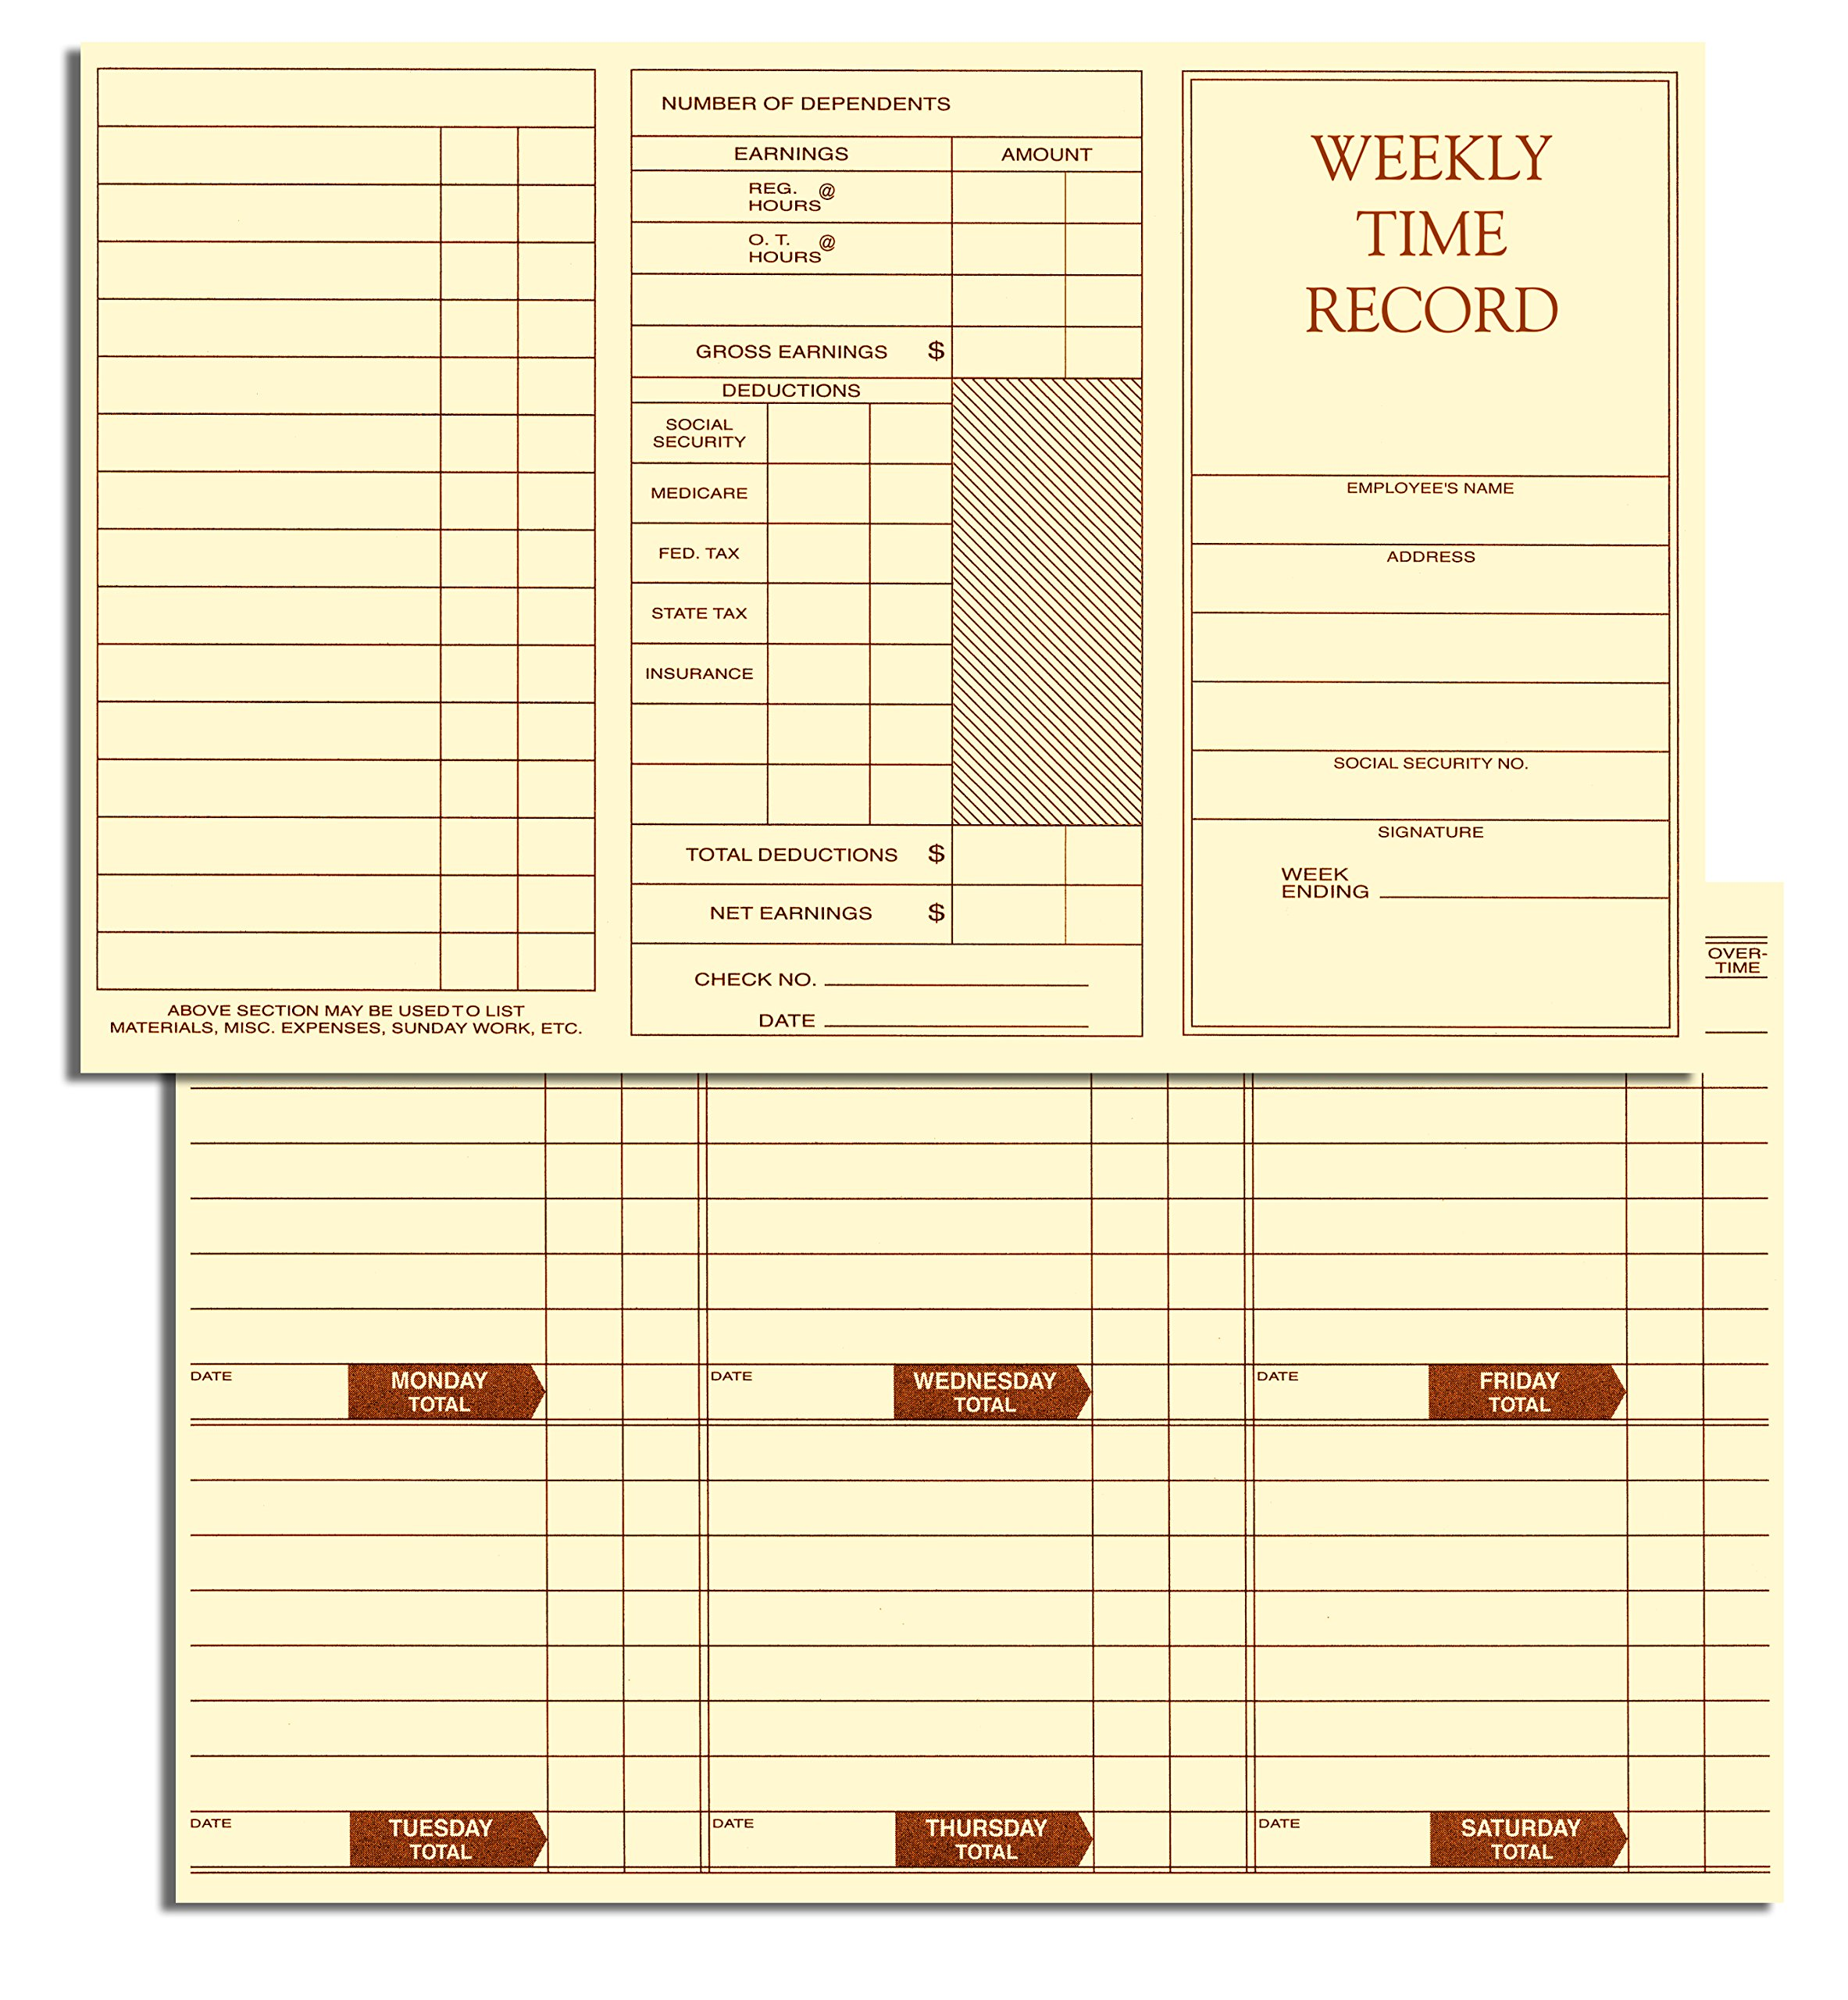 Weekly Employee Pocket Size Time Cards